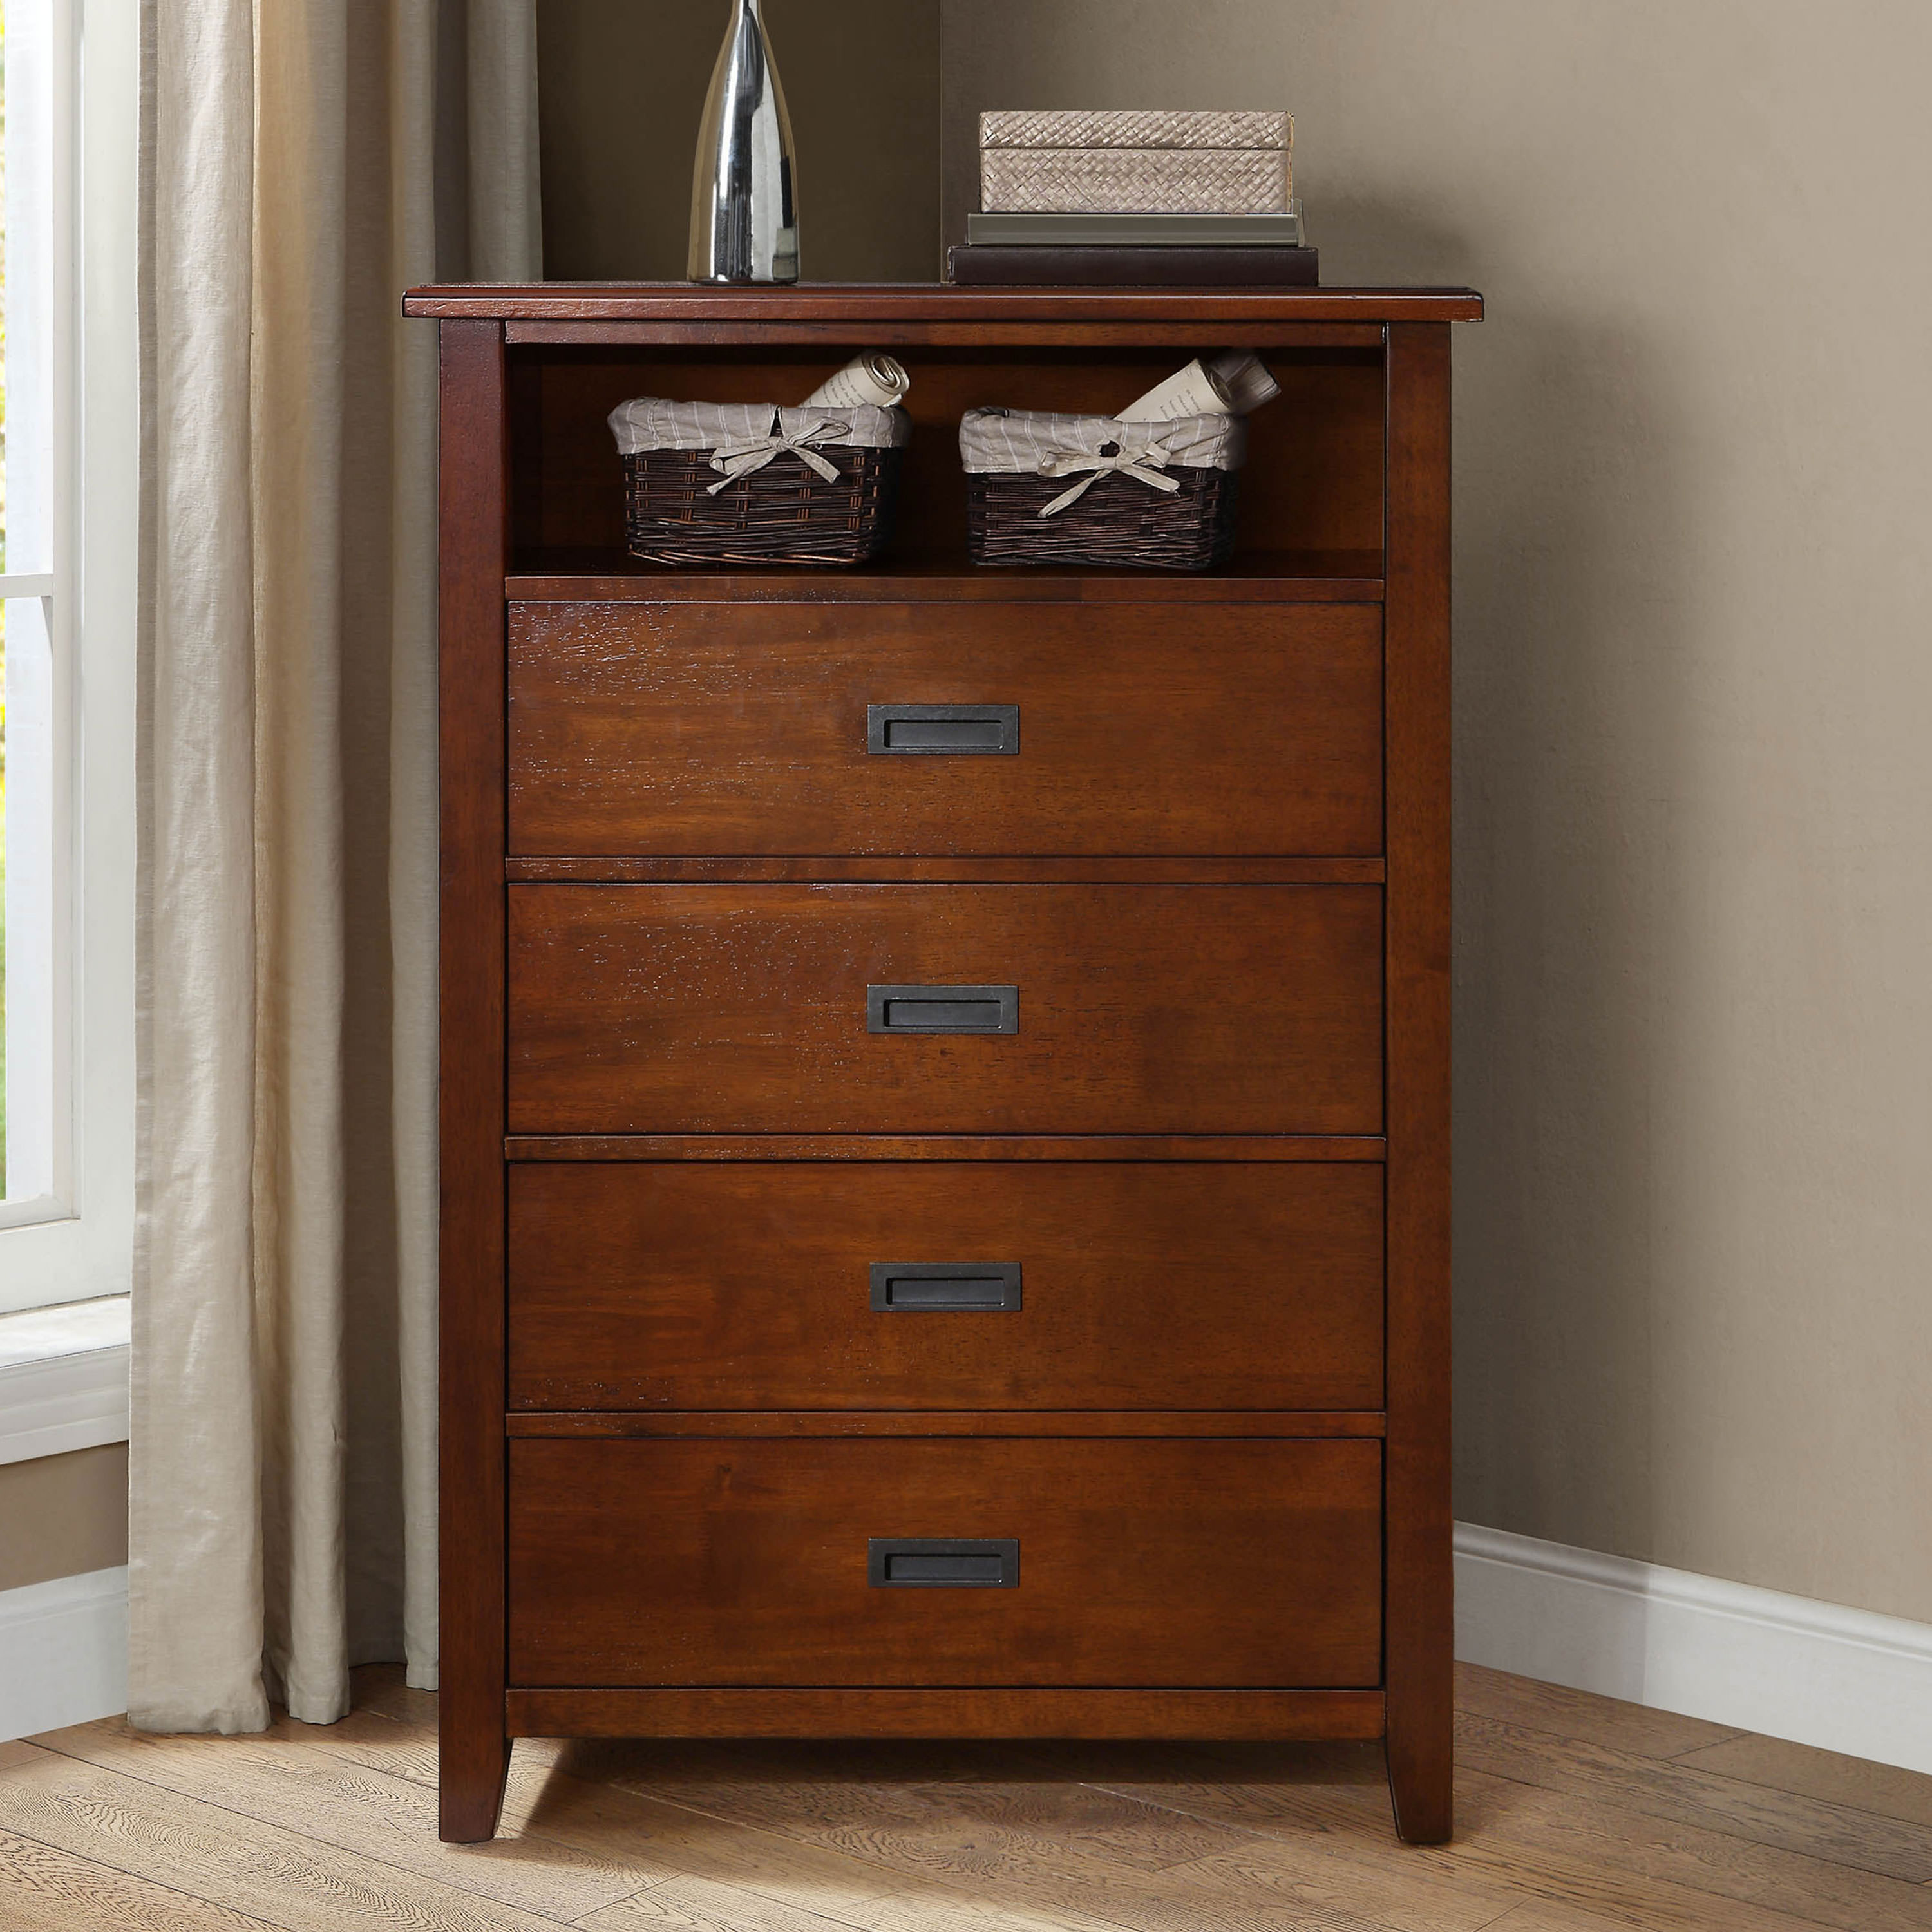 Better Homes & Gardens Maddox Crossing 4-Drawer Dresser, Warm Brown Finish